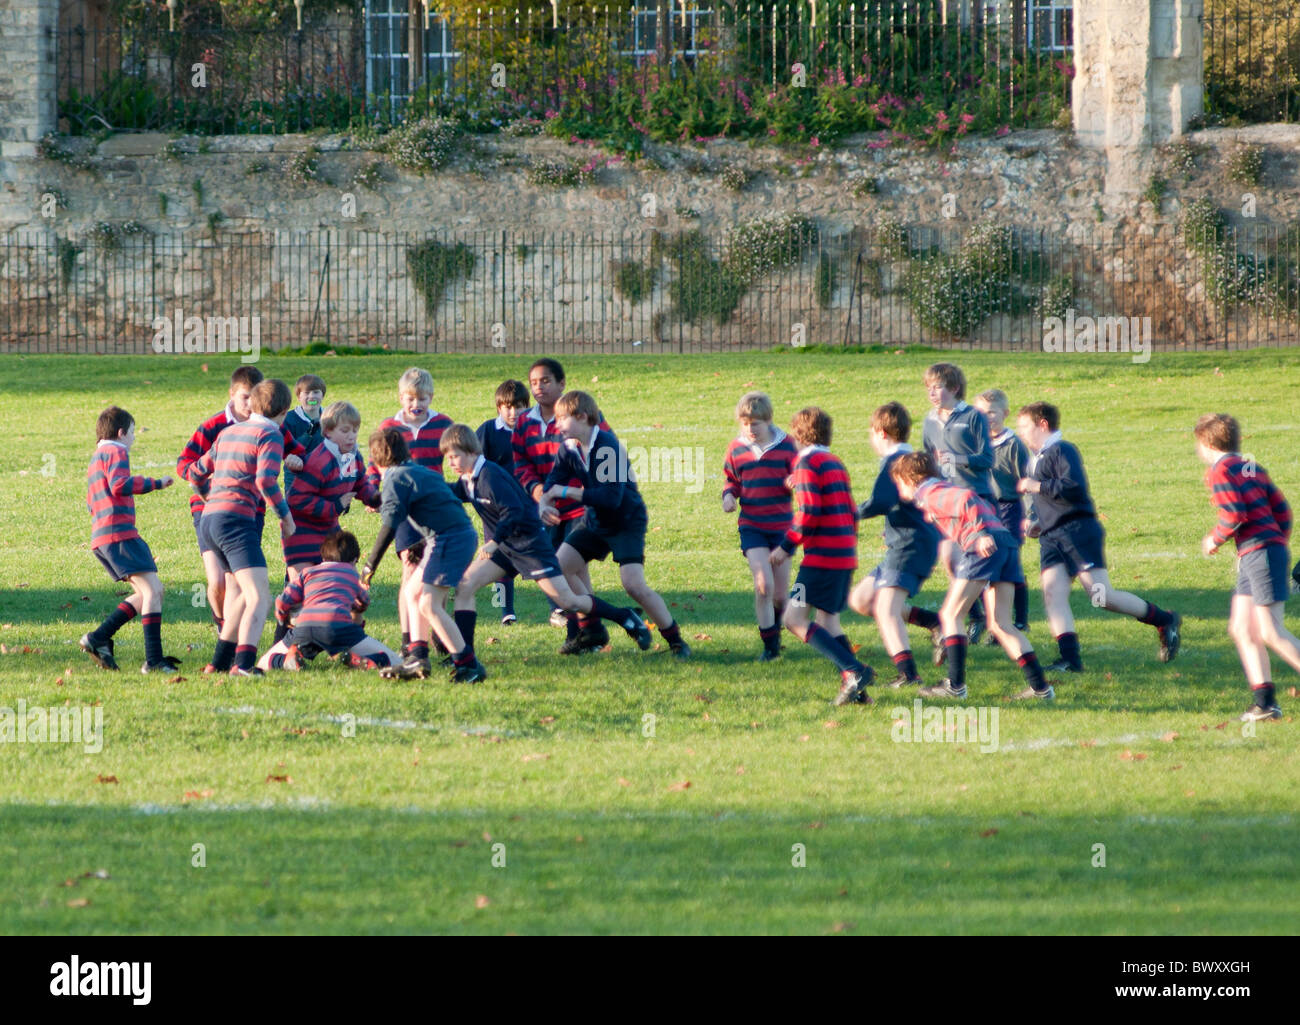 School children playing rugby on Merton college fields. Oxford. England - Stock Image